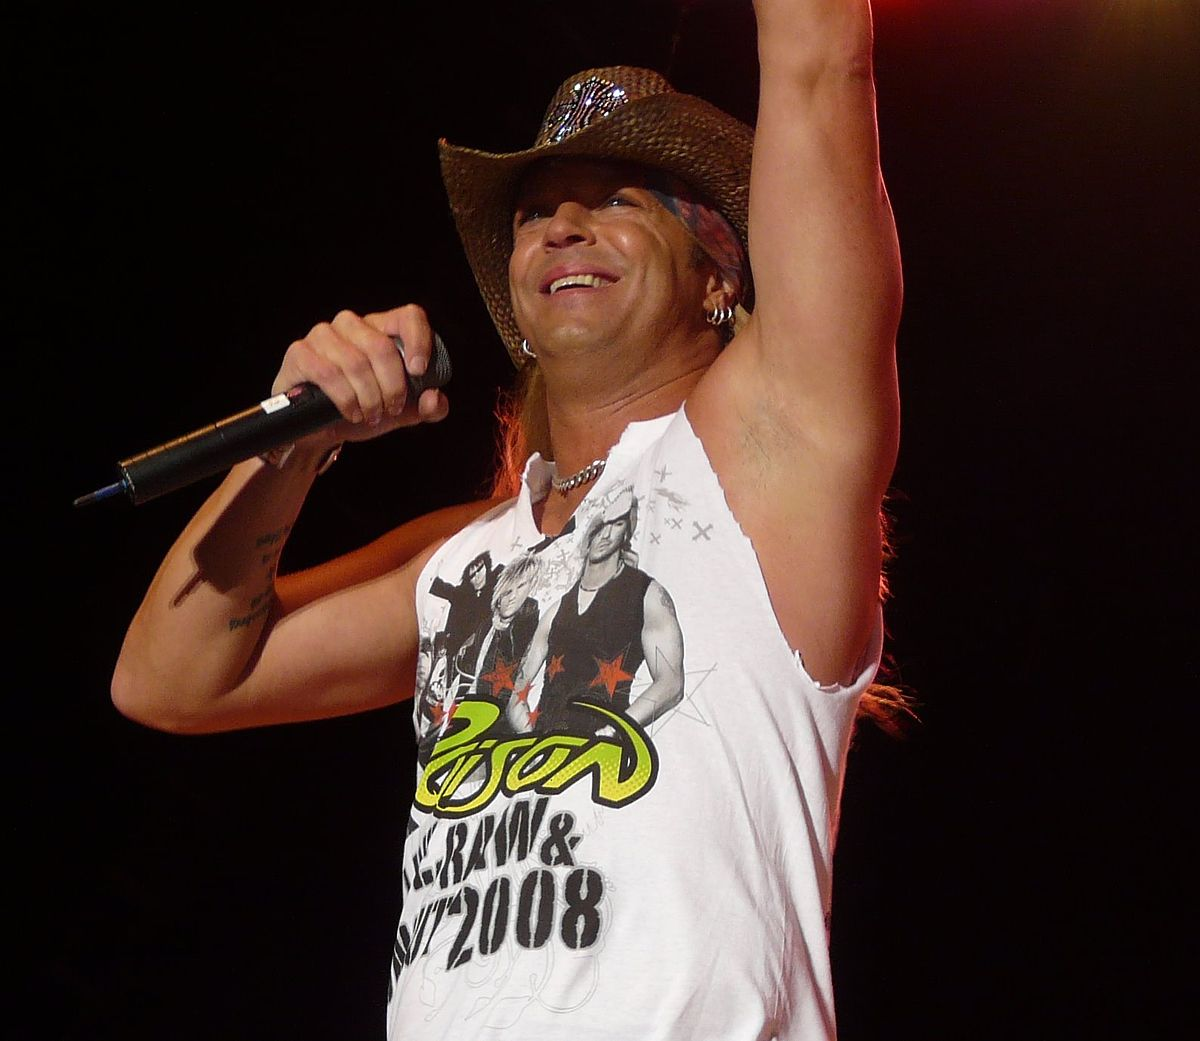 bret michaels wikipedia. Black Bedroom Furniture Sets. Home Design Ideas